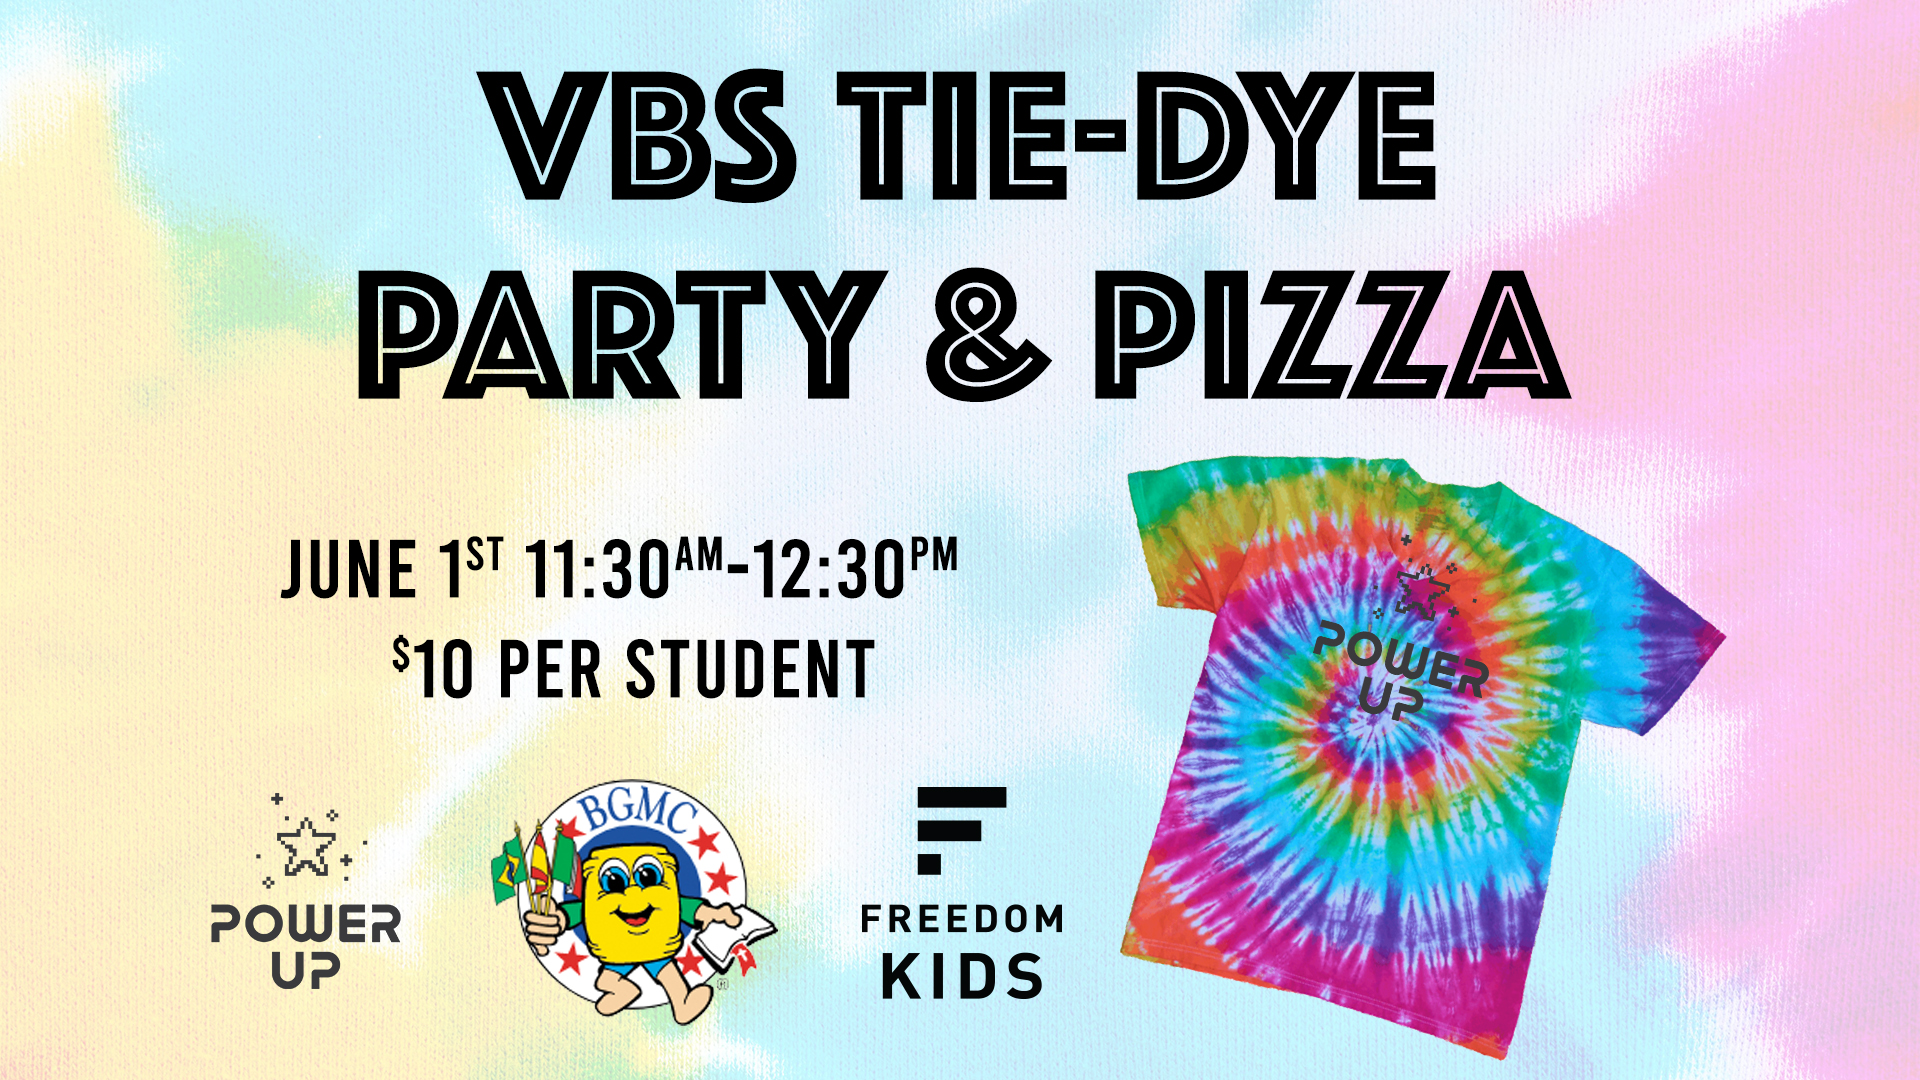 Tie-Dye Party Slide FINAL.jpg